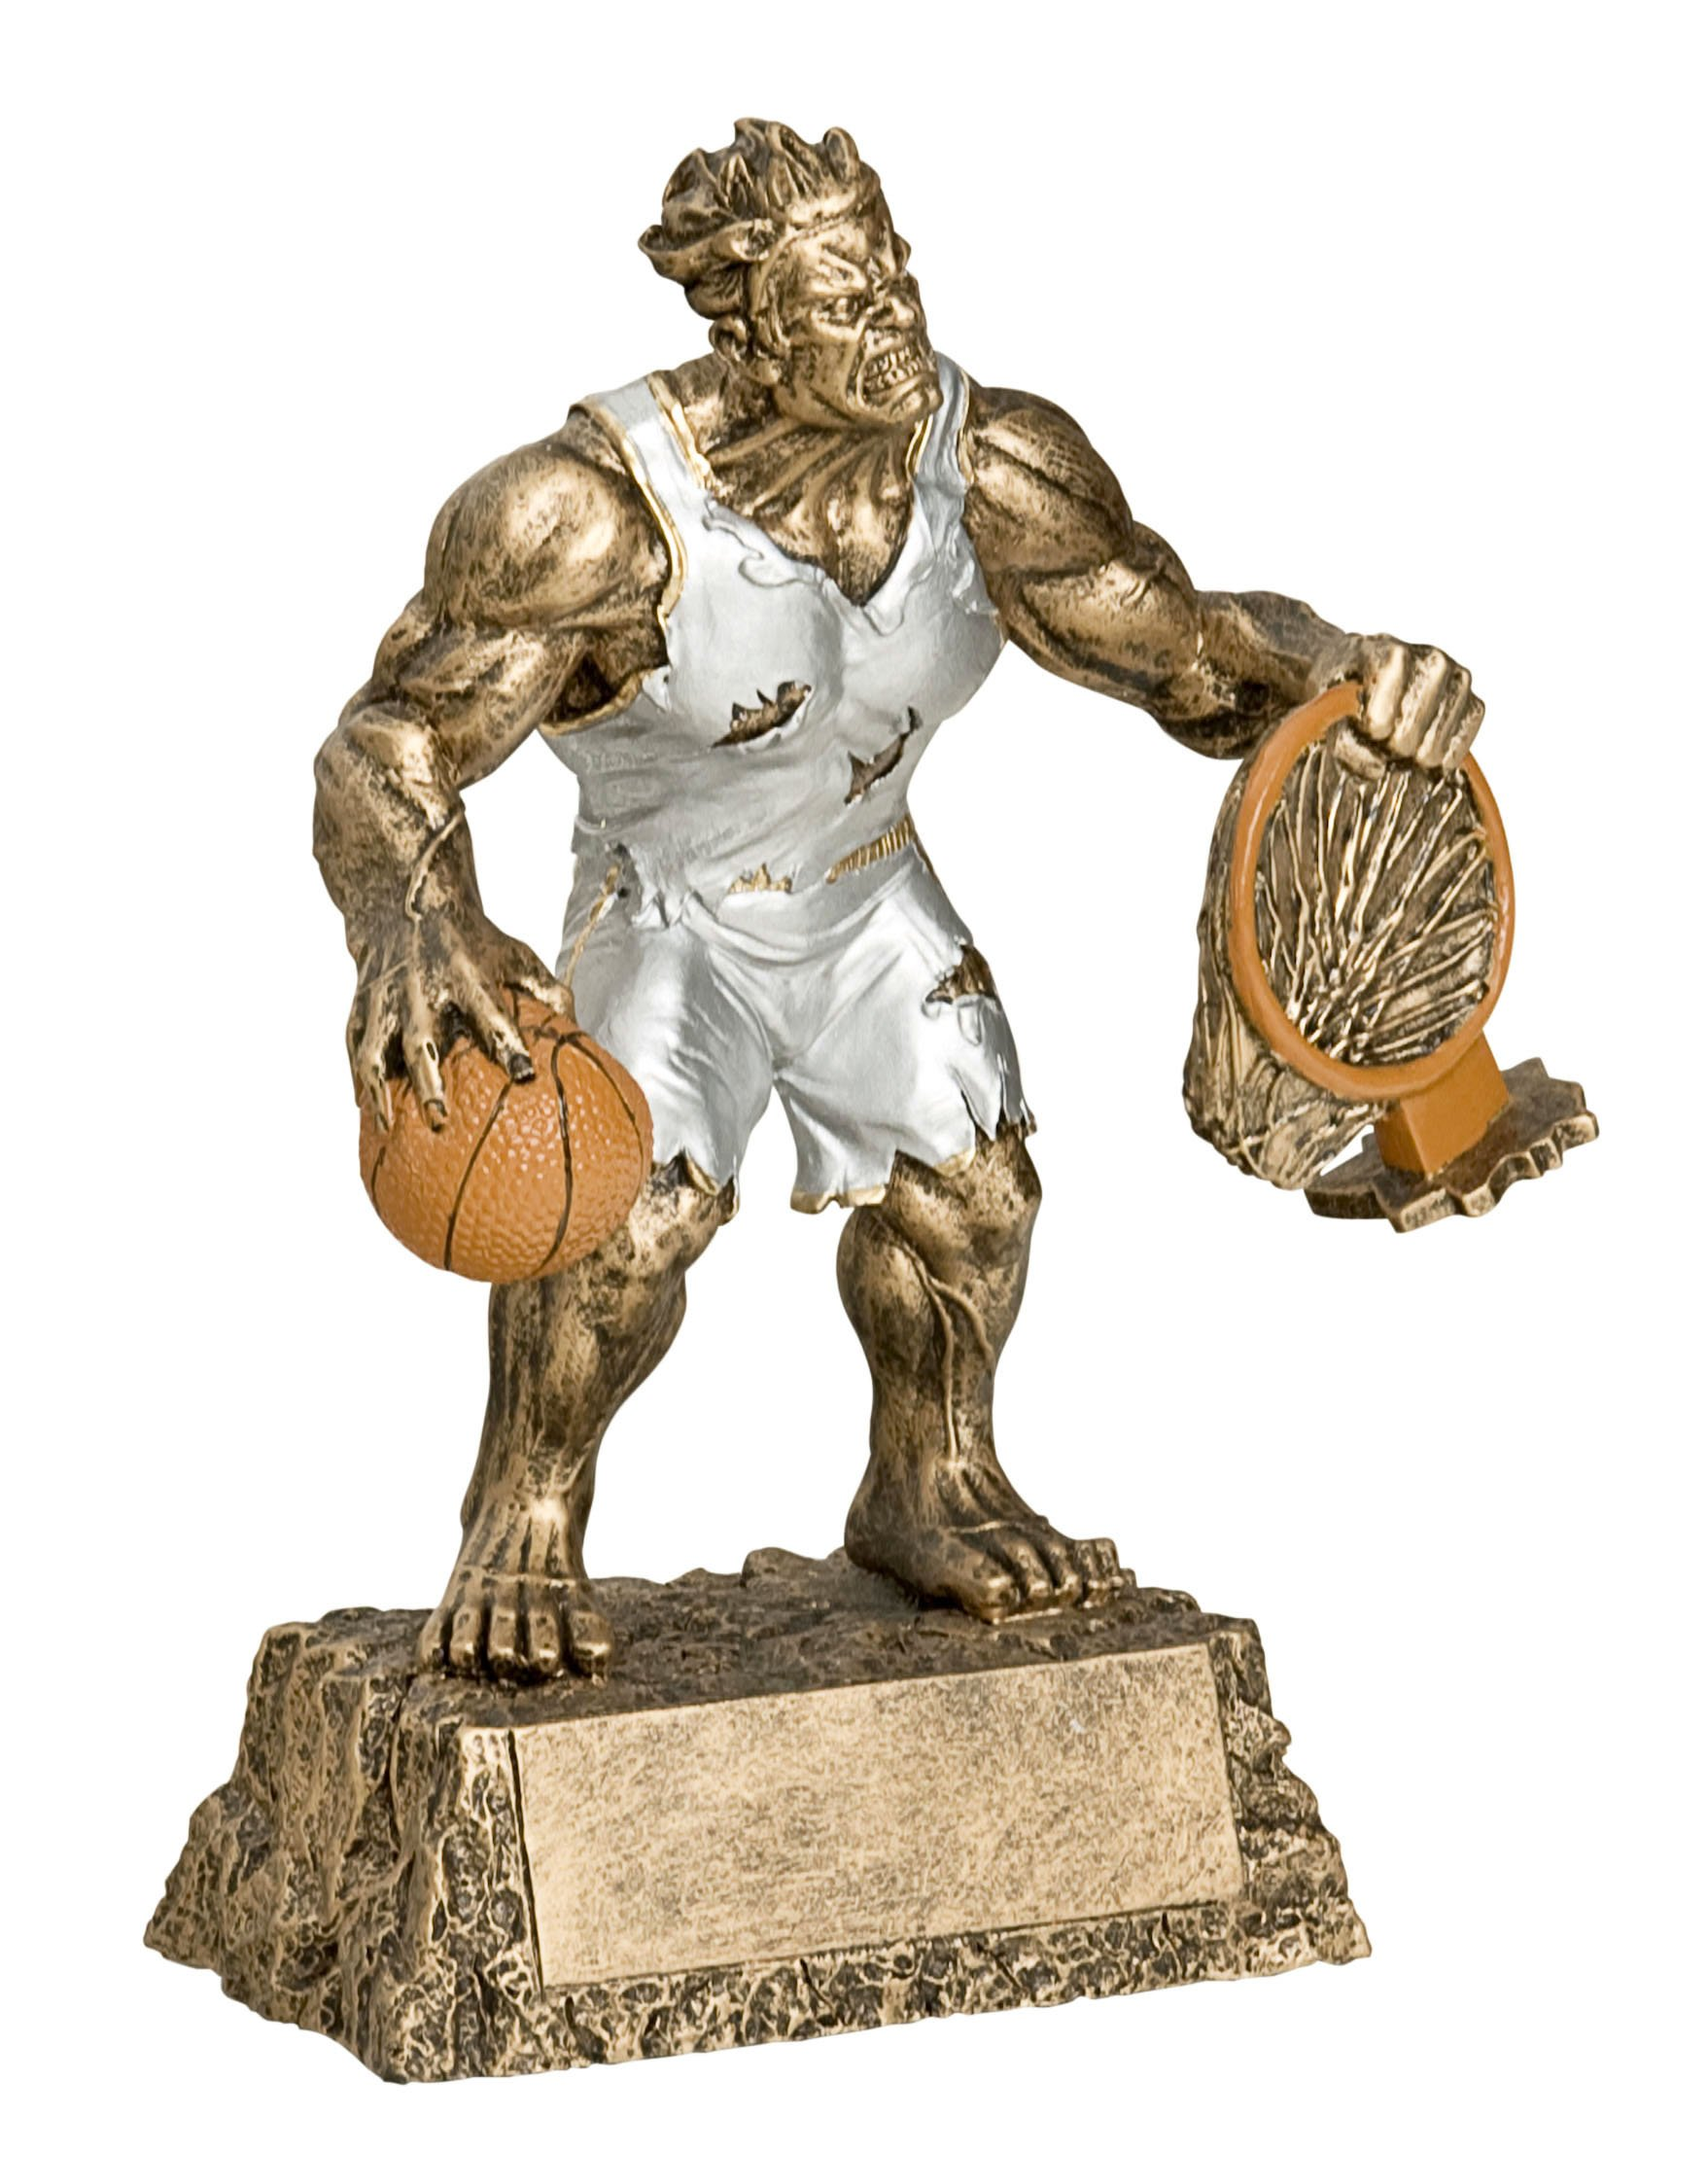 Decade Awards Monster Basketball Trophy - Engraved Plates by Request - Perfect Basketball Award Trophy - Hand Painted Design - Made by Heavy Resin Casting - for Recognition